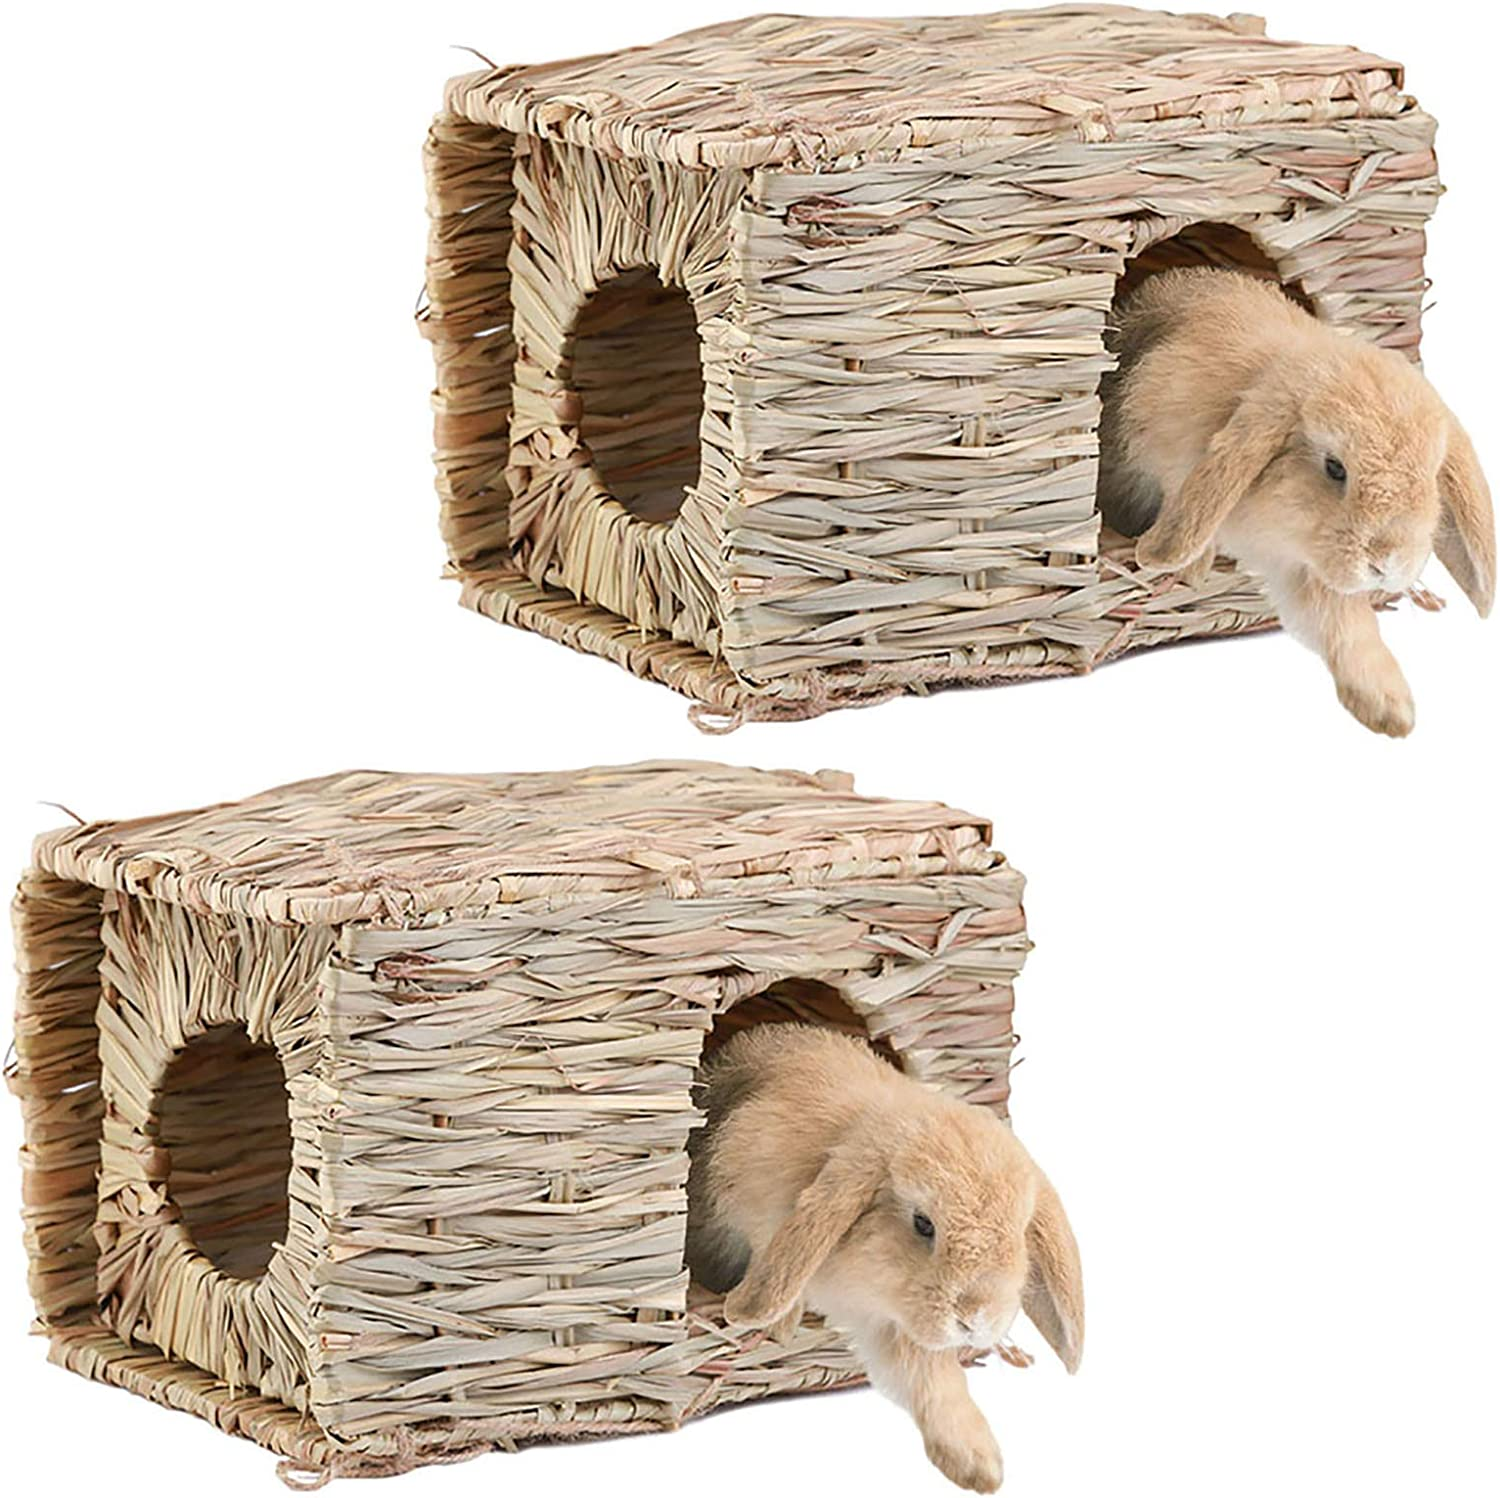 Natural Hand Woven Seagrass Hay Hut Foldable Toy Hut for Play and Sleep Guinea Pigs Small Animals Hideaway Hut Toy for Bunny Chinchilla DGSL Grass House for Rabbit